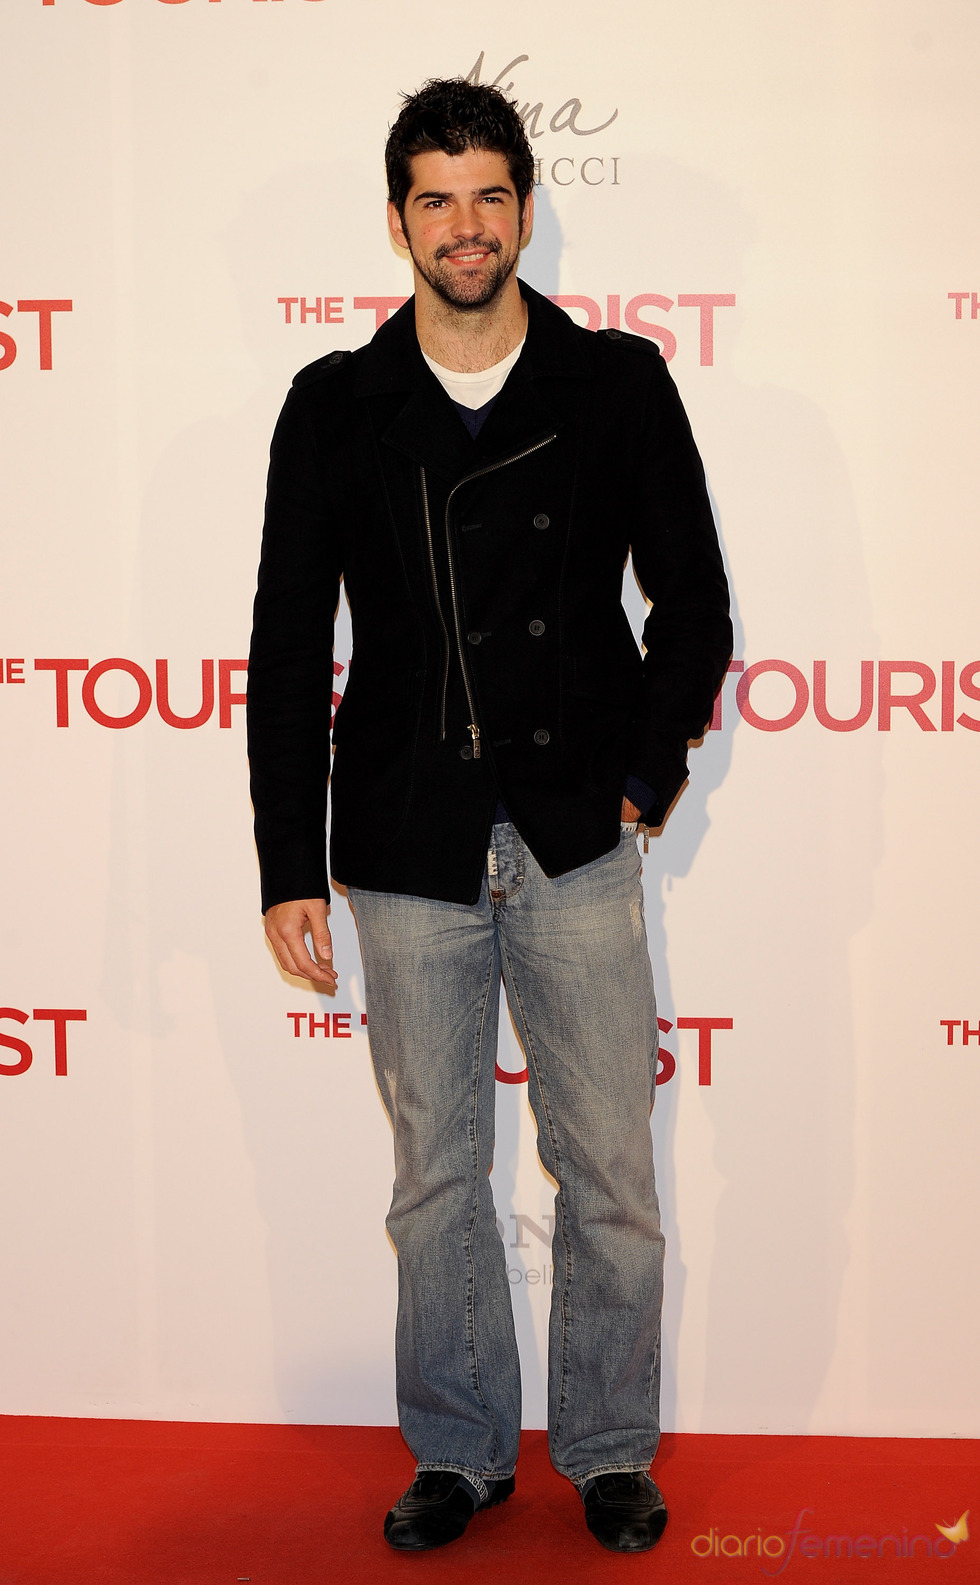 Miguel Ángel Muñoz en la premiere de 'The Tourist' en Madrid